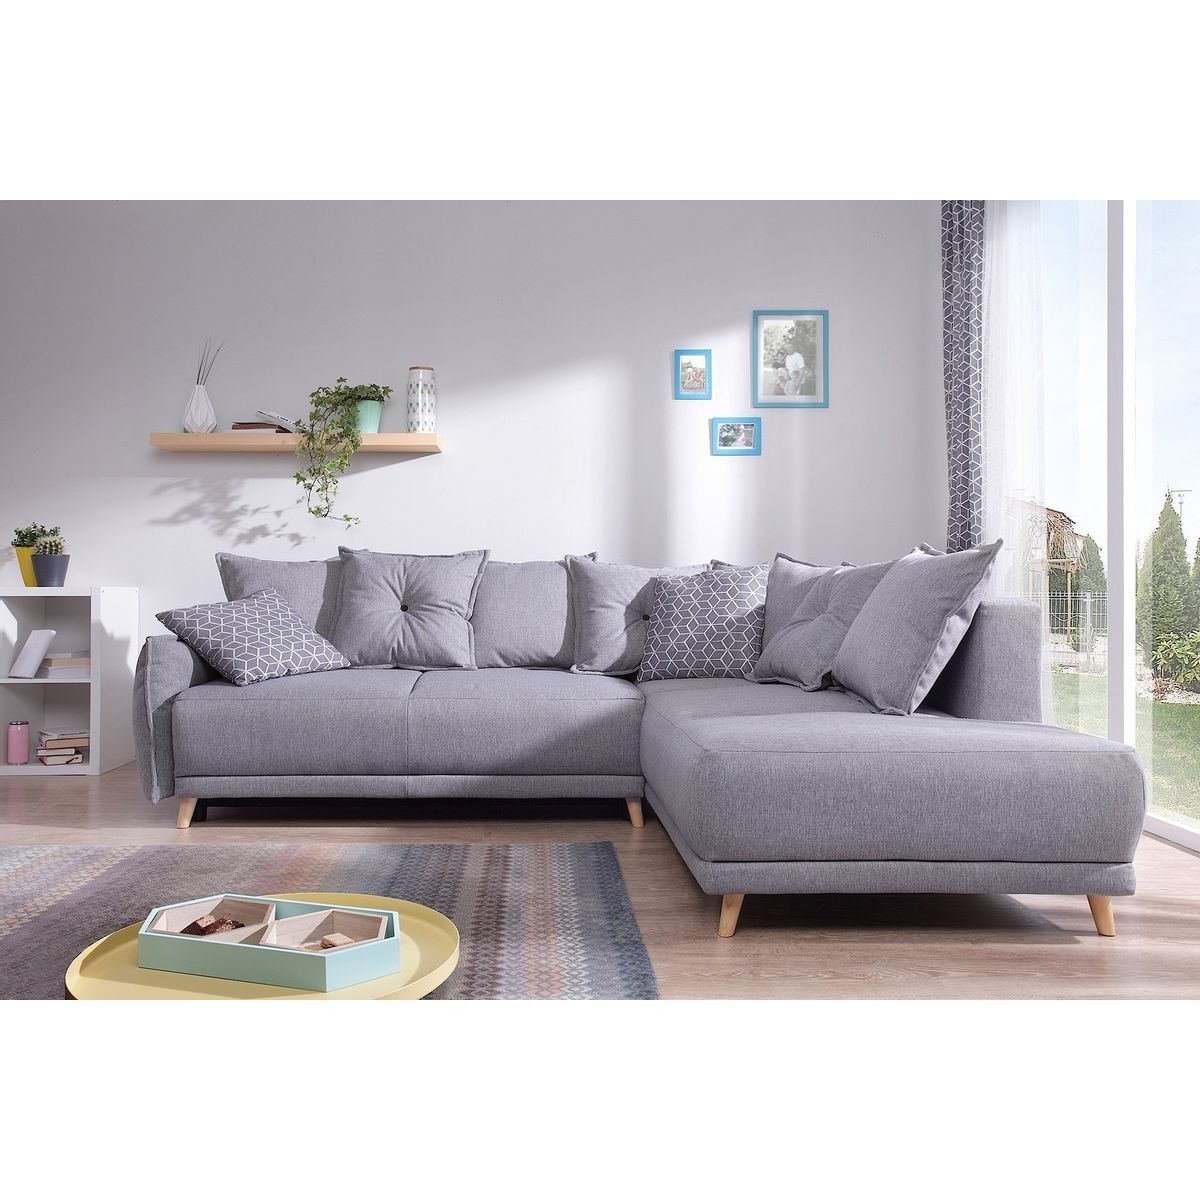 Canape Scandinave D Angle Droit Lena Taille Angle Droit Canape Angle Gris Canape Angle Canape Bobochic